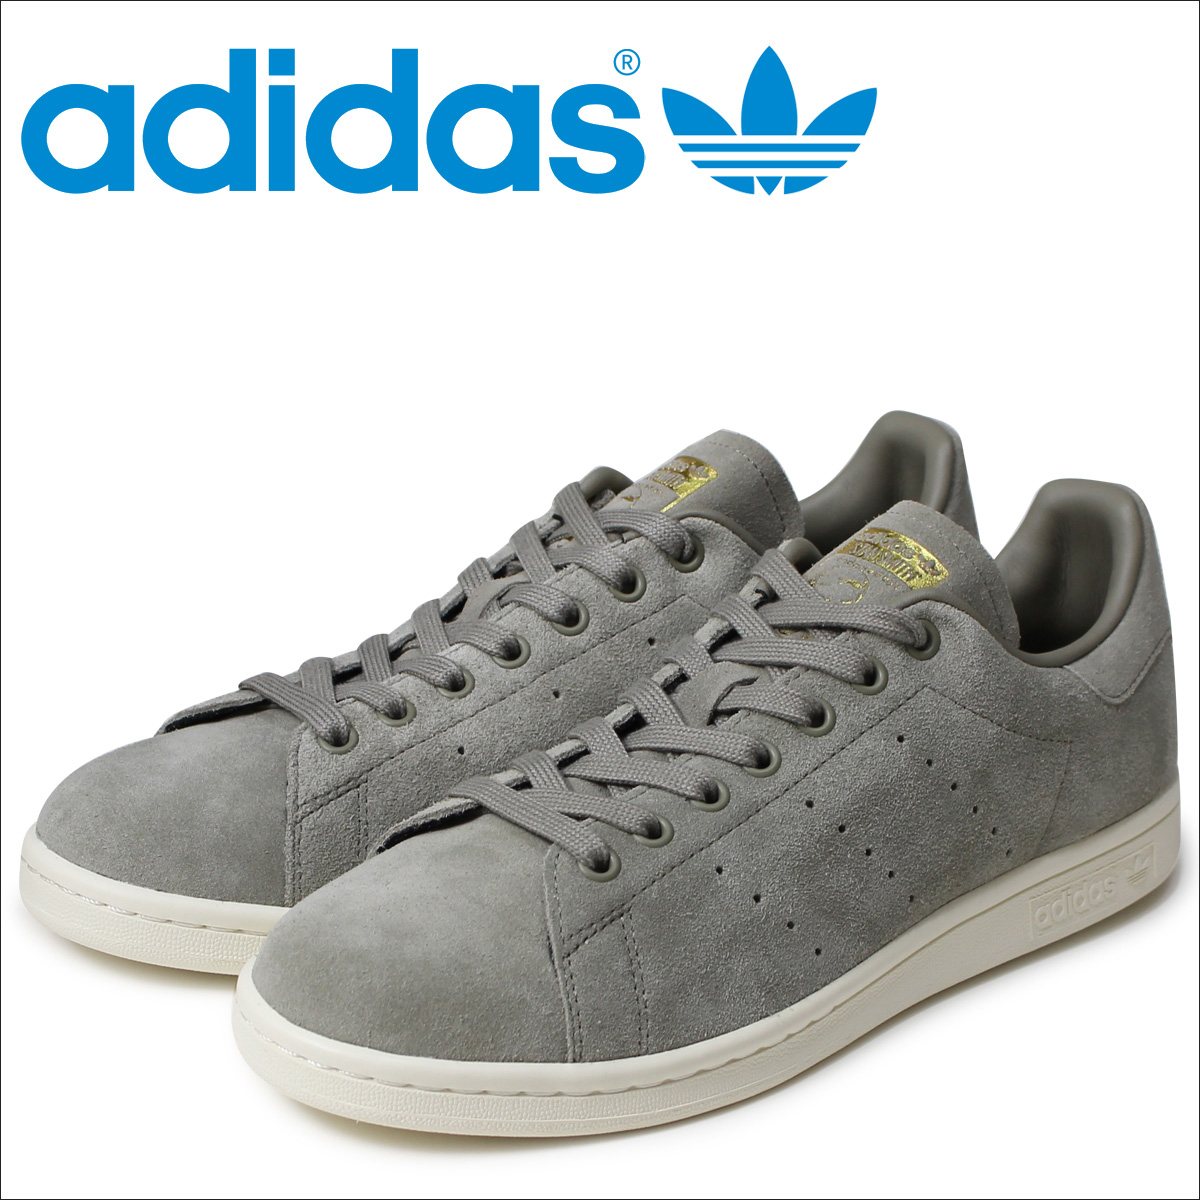 It is a classic mark proud of the impact almost the face of the brand to,  and three lines symbolizing Adidas are adopted to a masterpiece